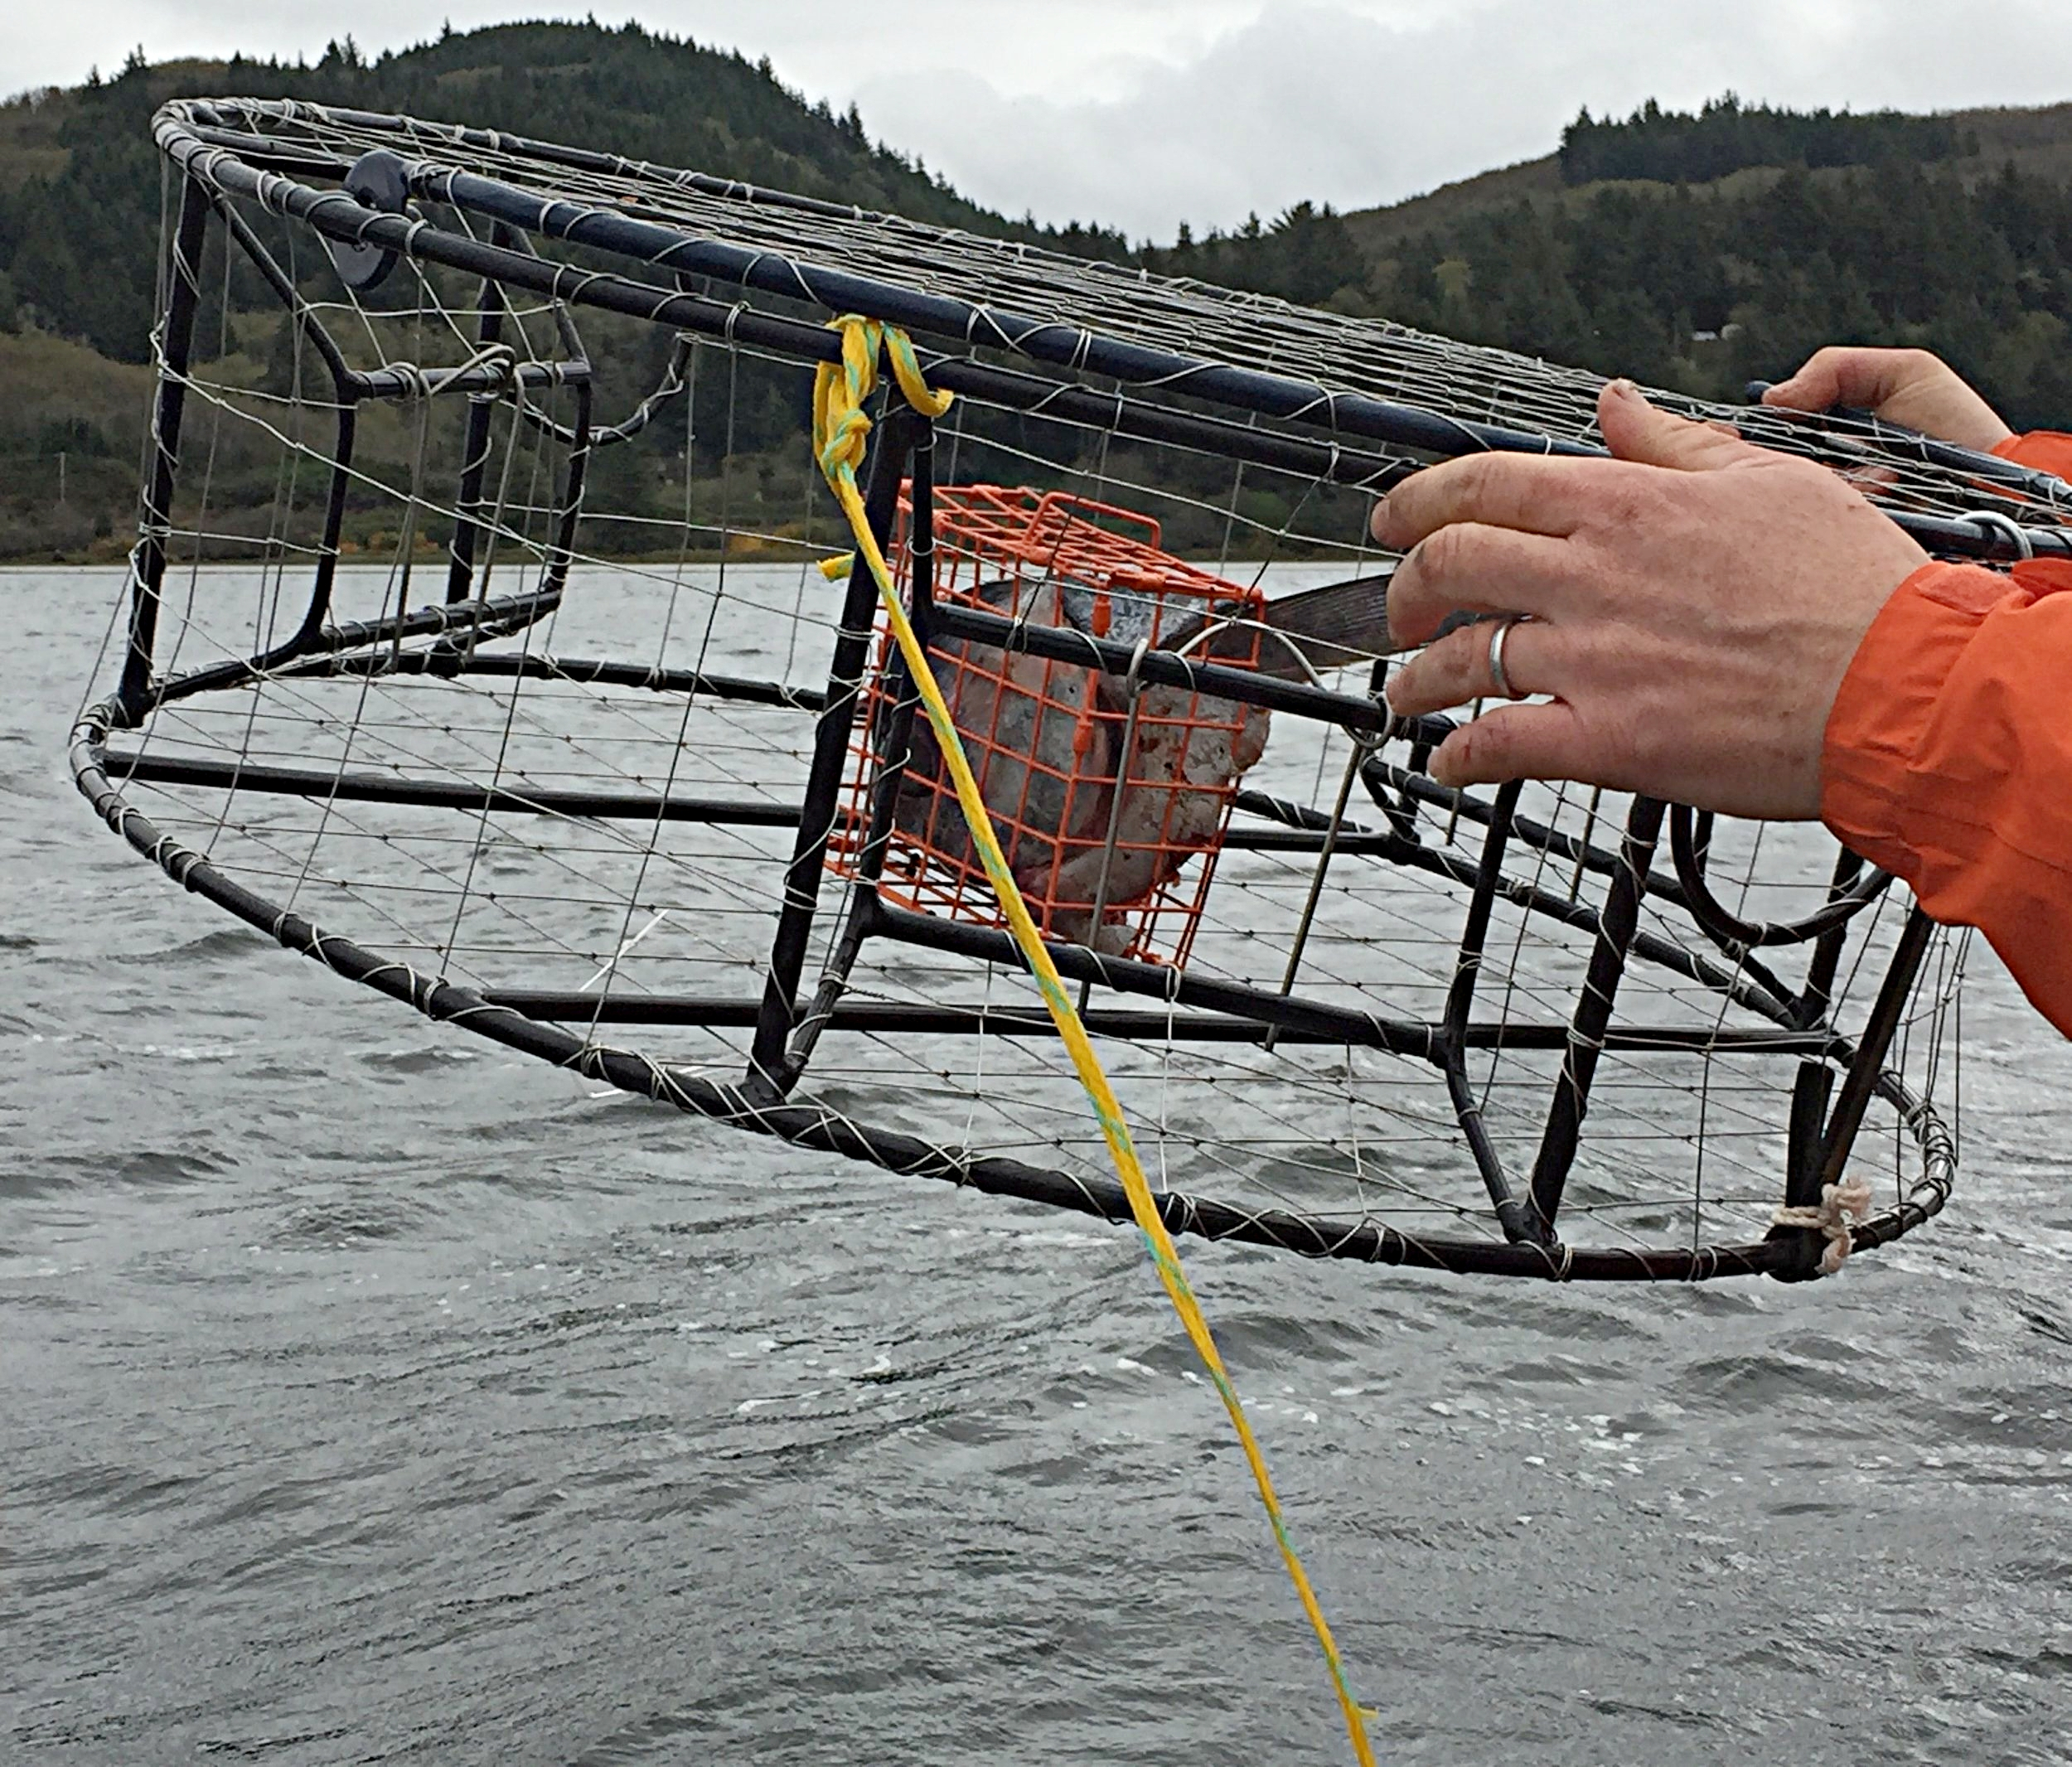 Crab pot being tossed into the bay